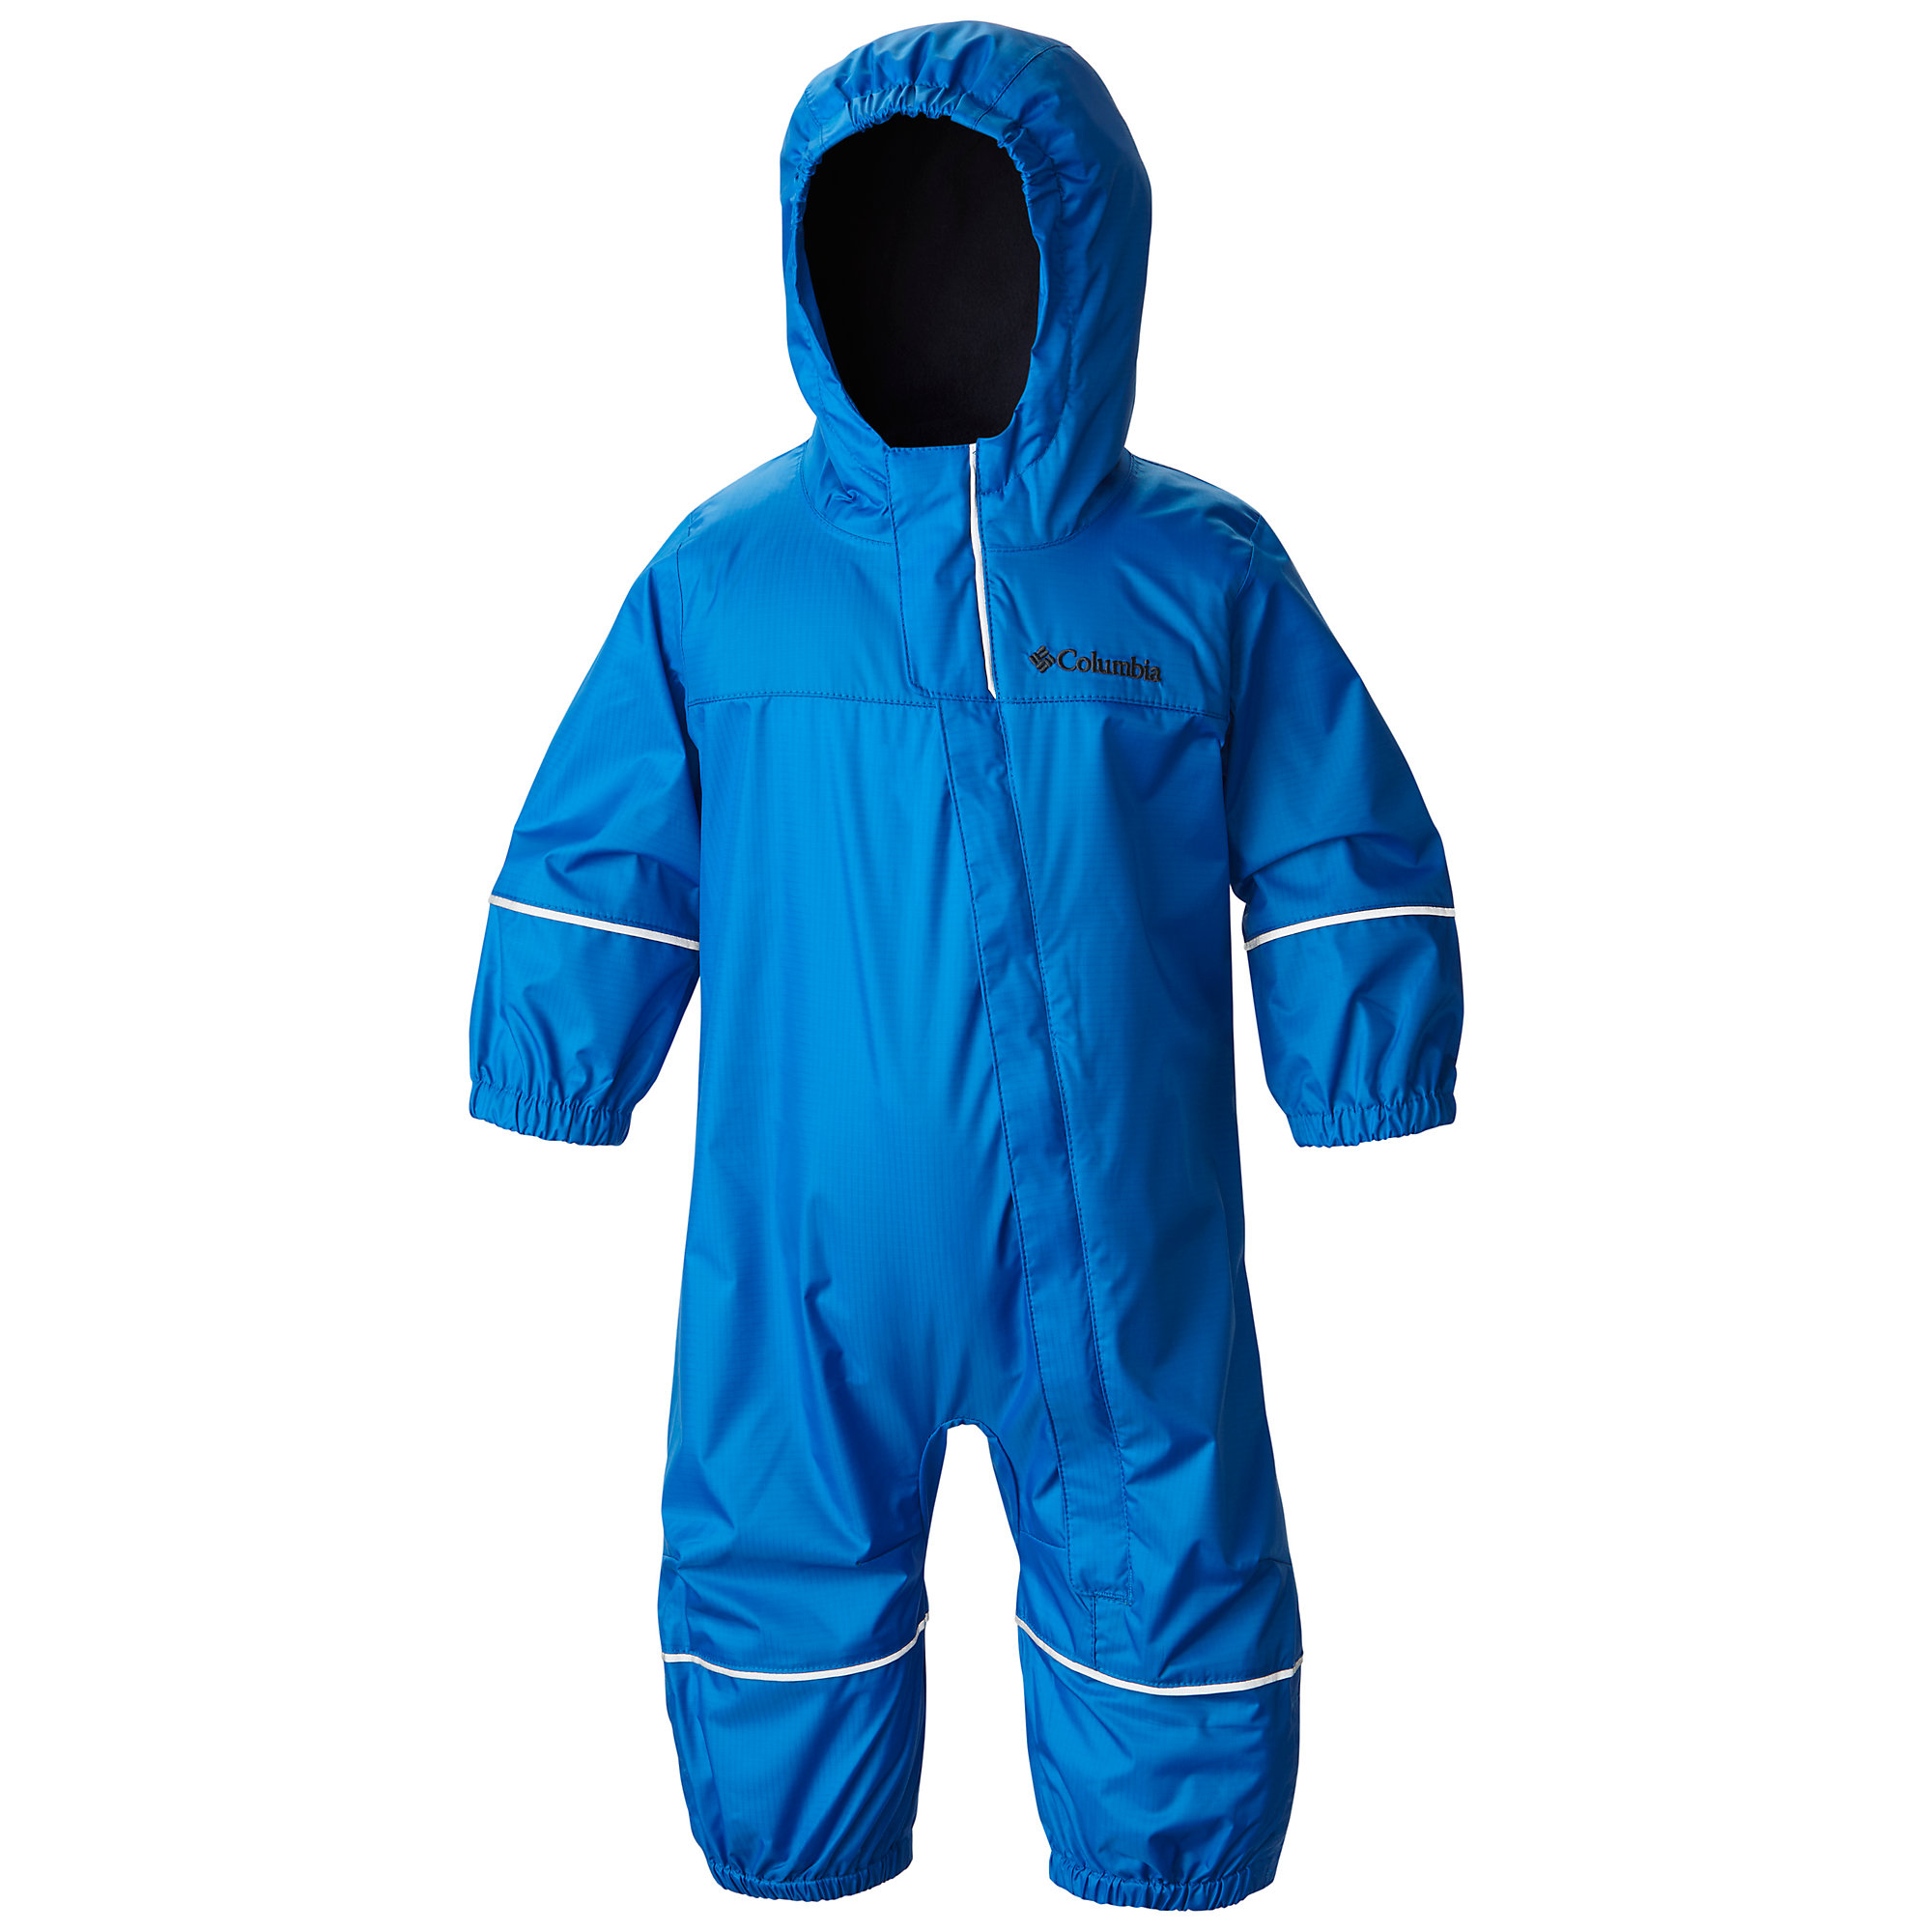 Columbia Snuggly Bunny Rain Suit